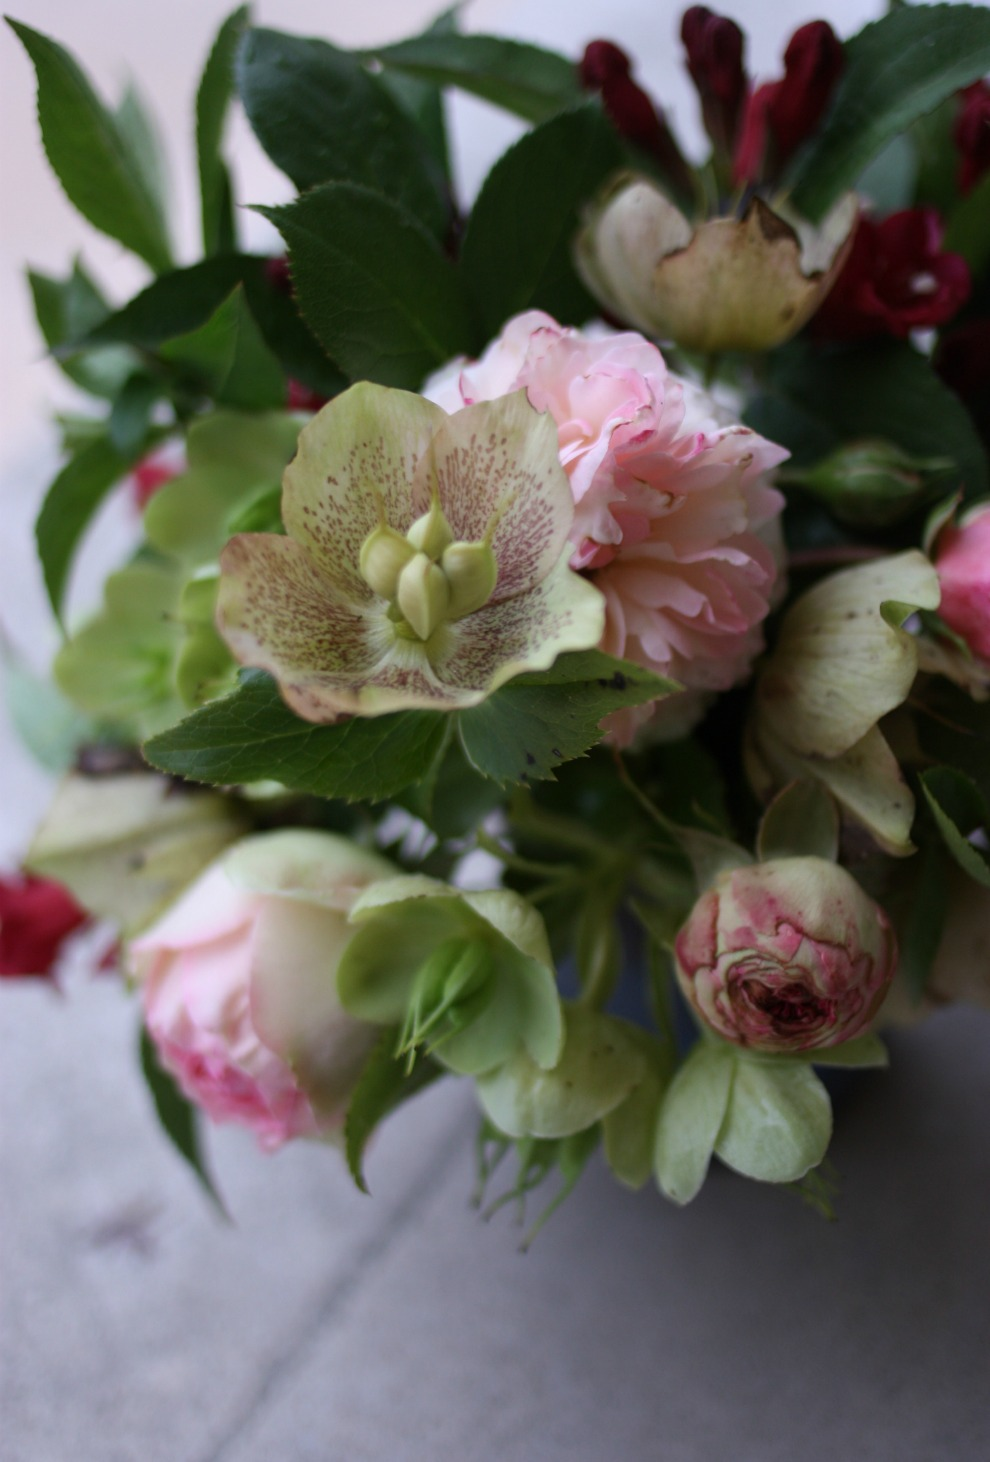 roses and hellebores from above